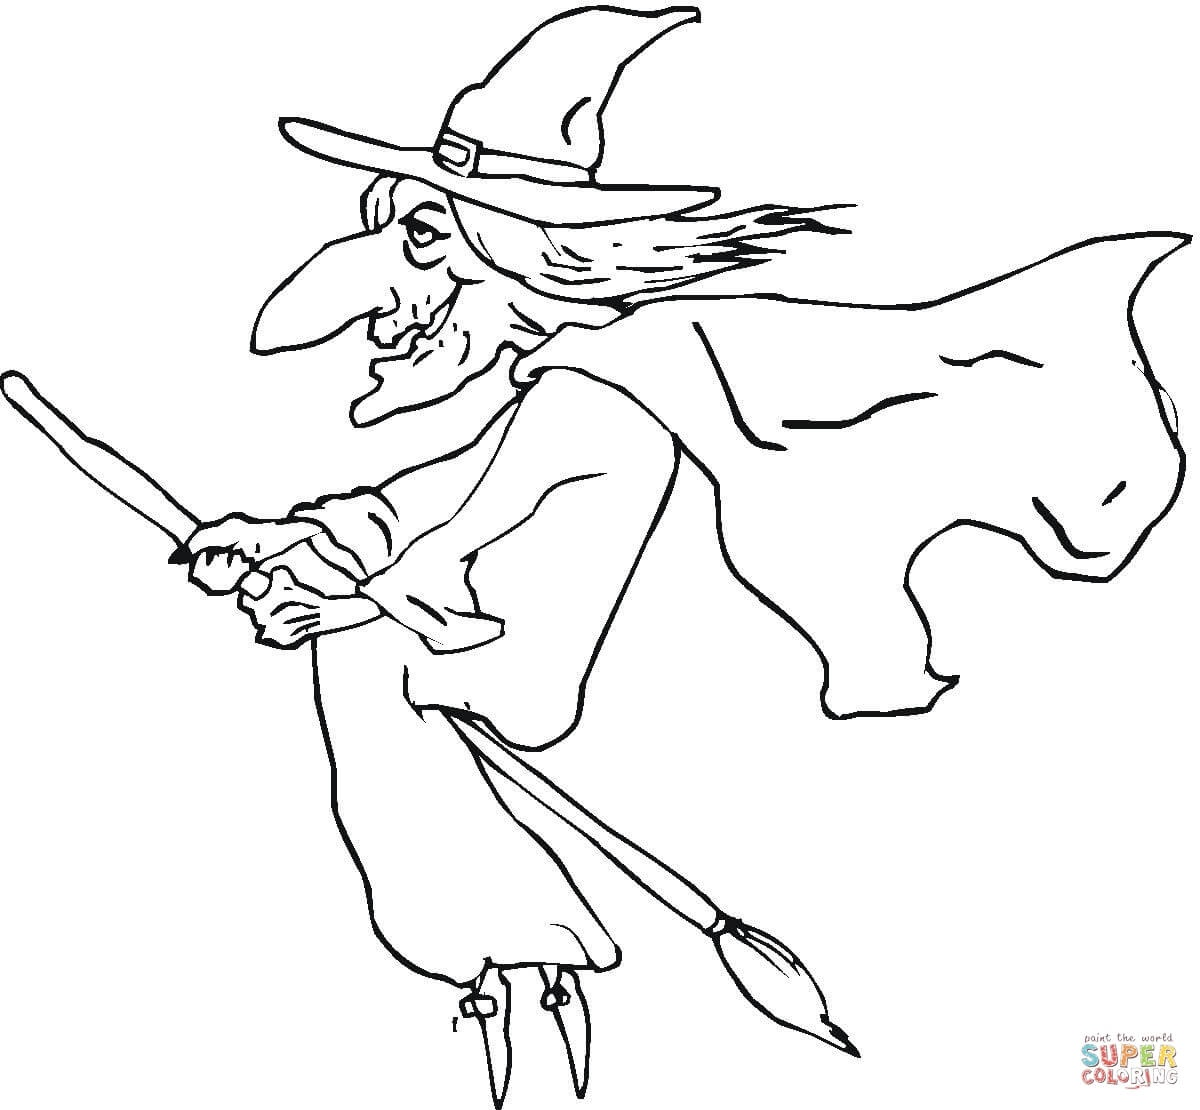 Ugly Old Witch Coloring Page | Free Printable Coloring Pages - Free Printable Pictures Of Witches